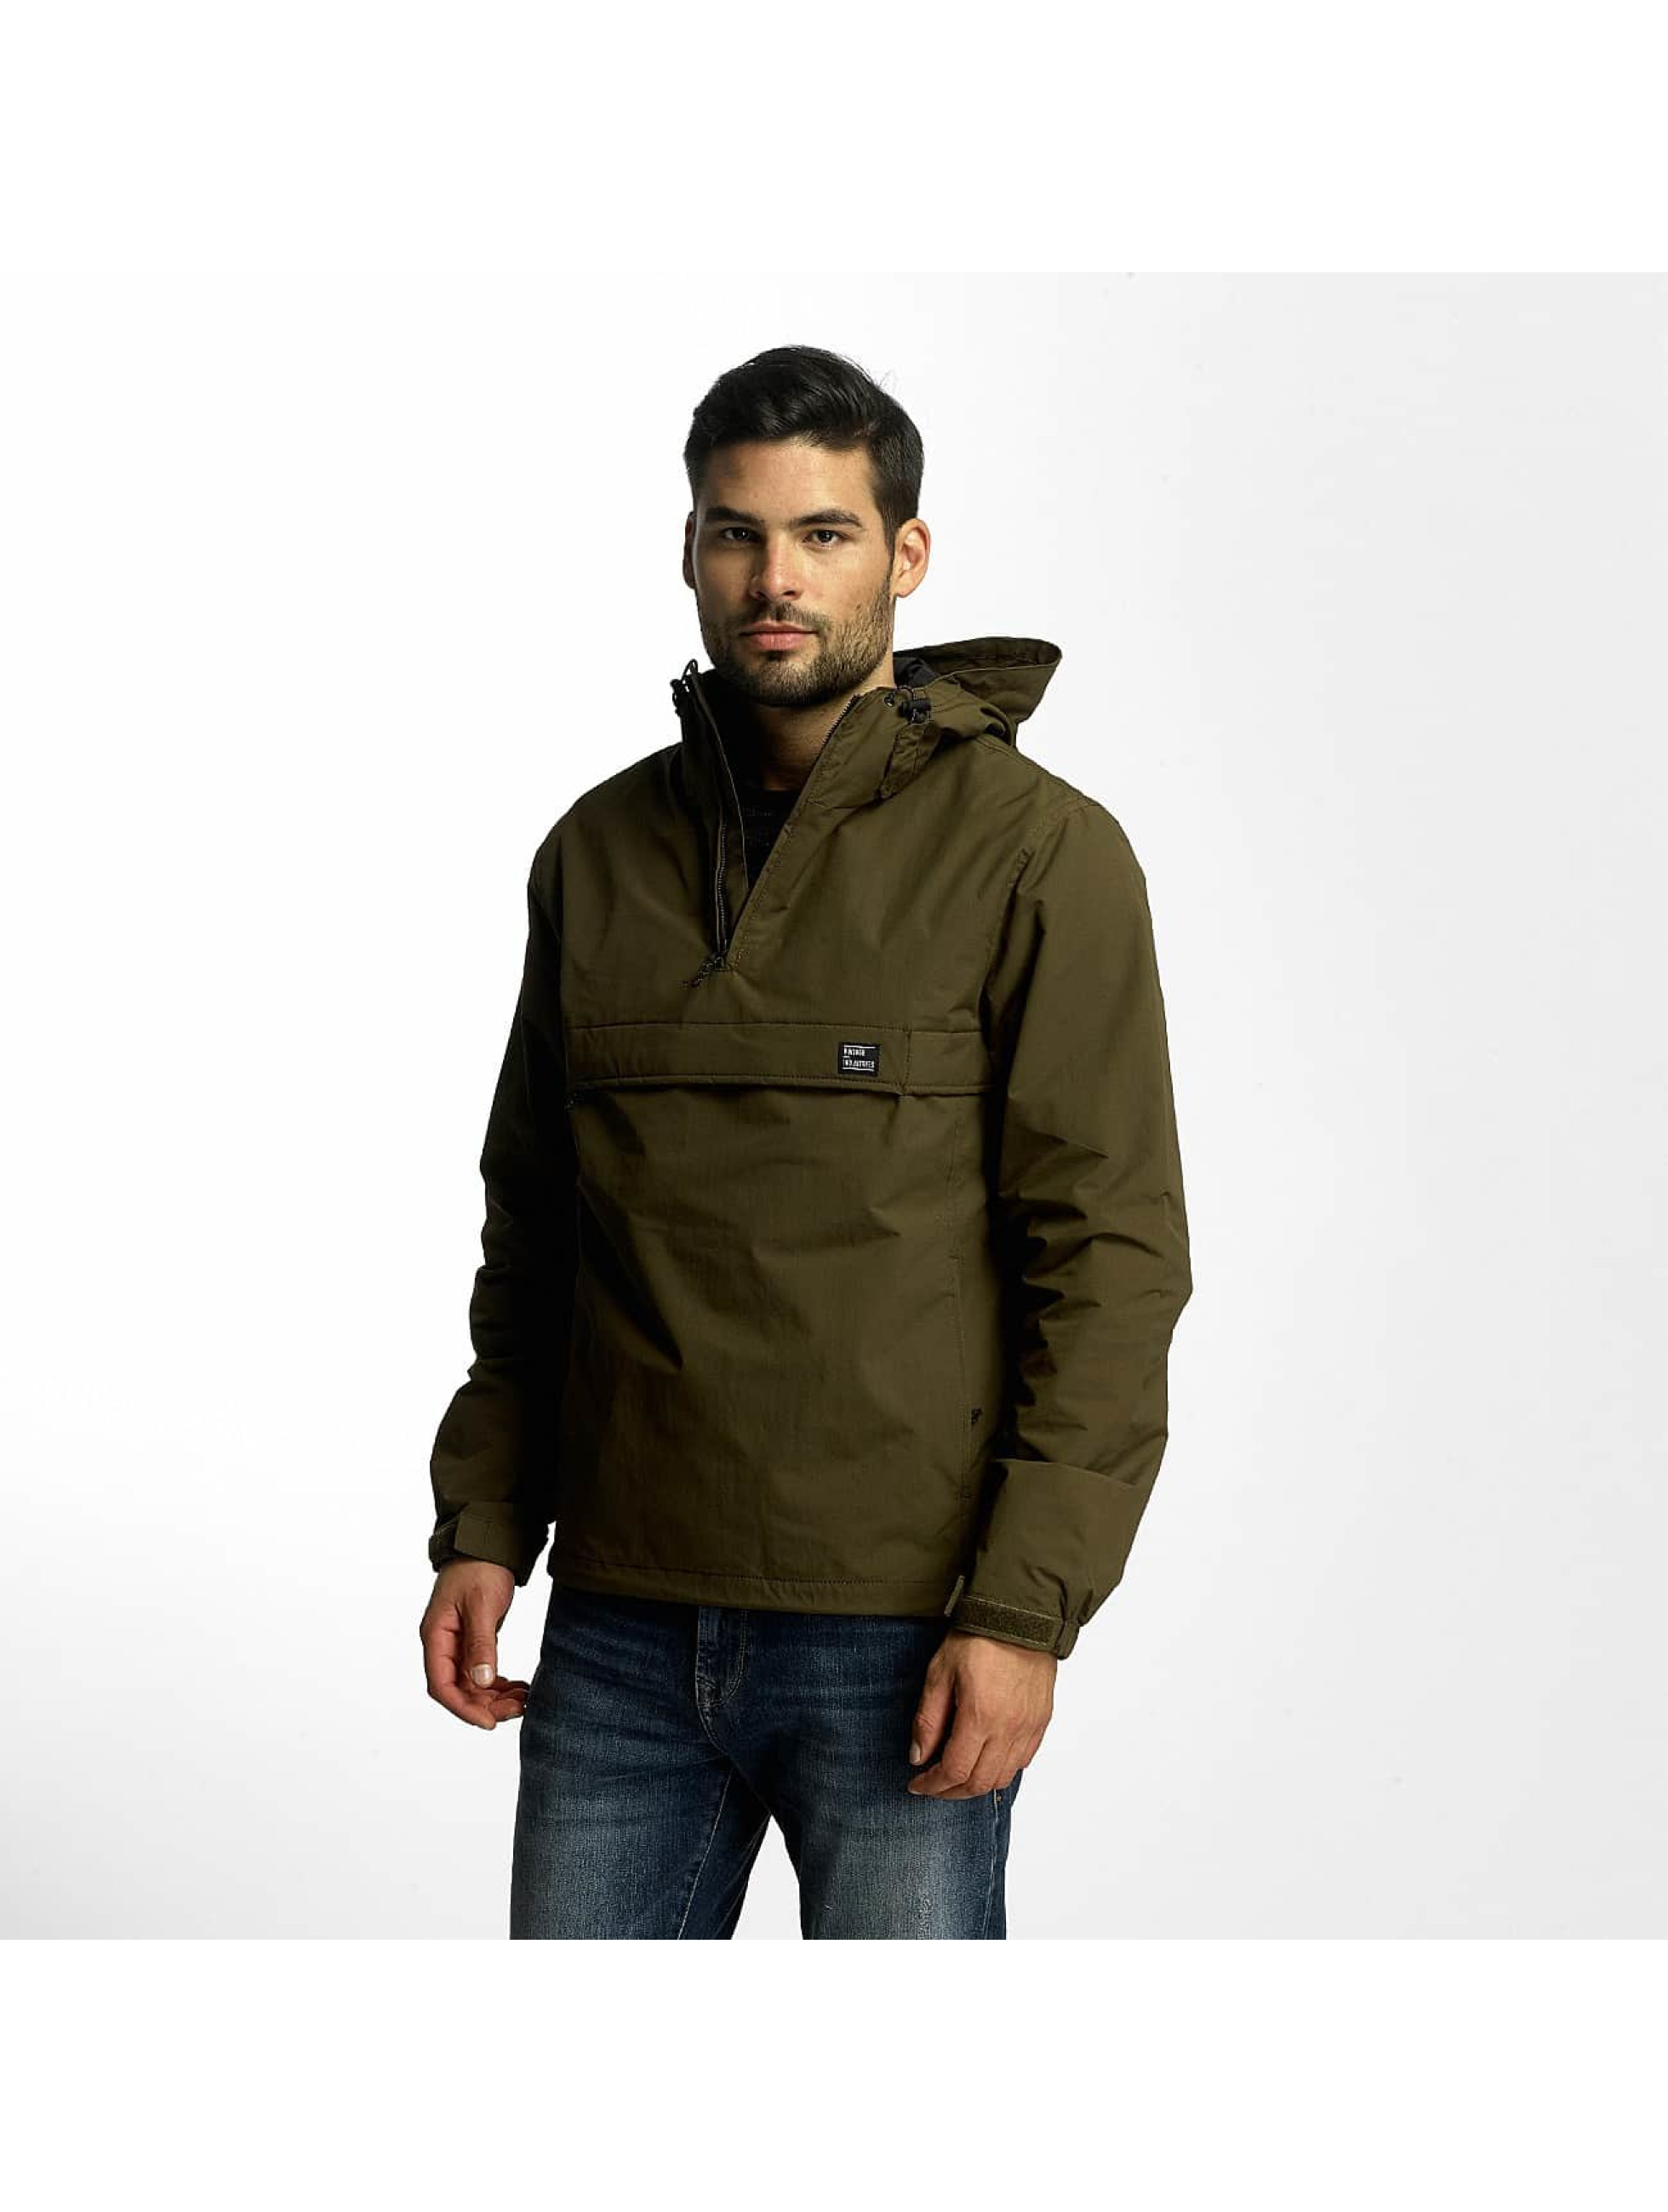 Vintage Industries Männer Übergangsjacke Shooter in olive